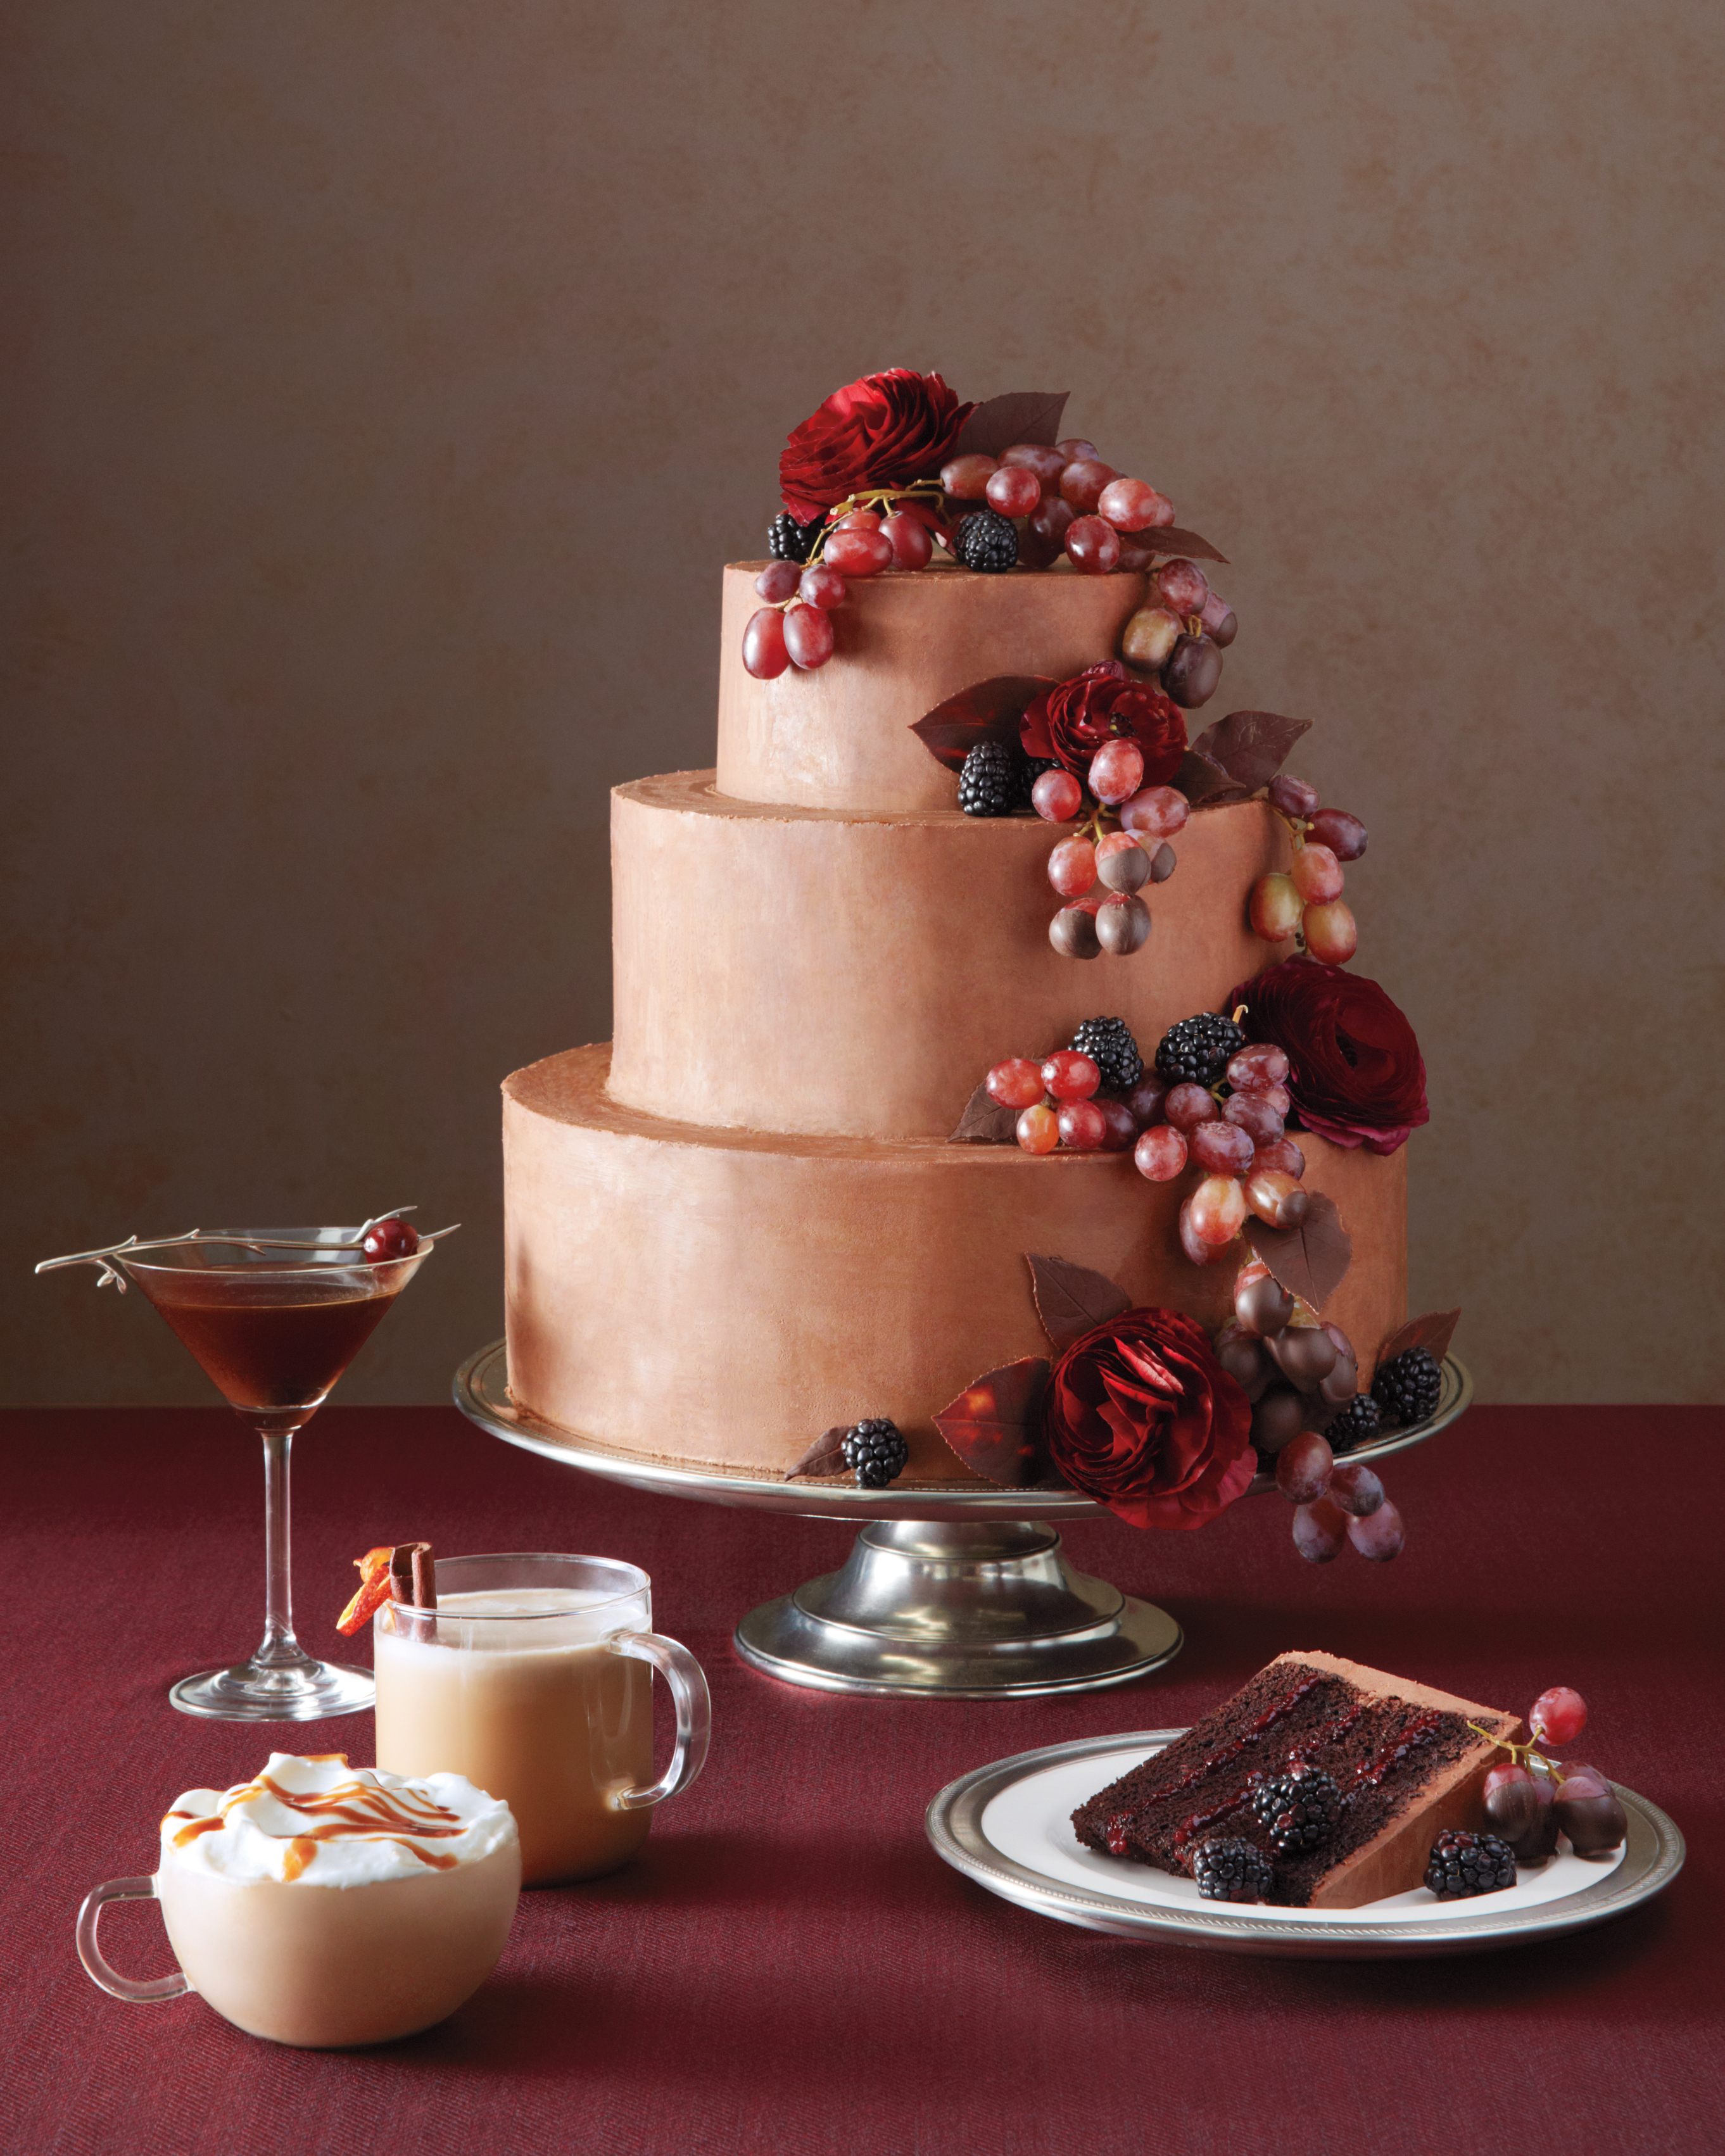 cake-and-coffee-051-exp2-flowers-and049-comp-mwd110159.jpg